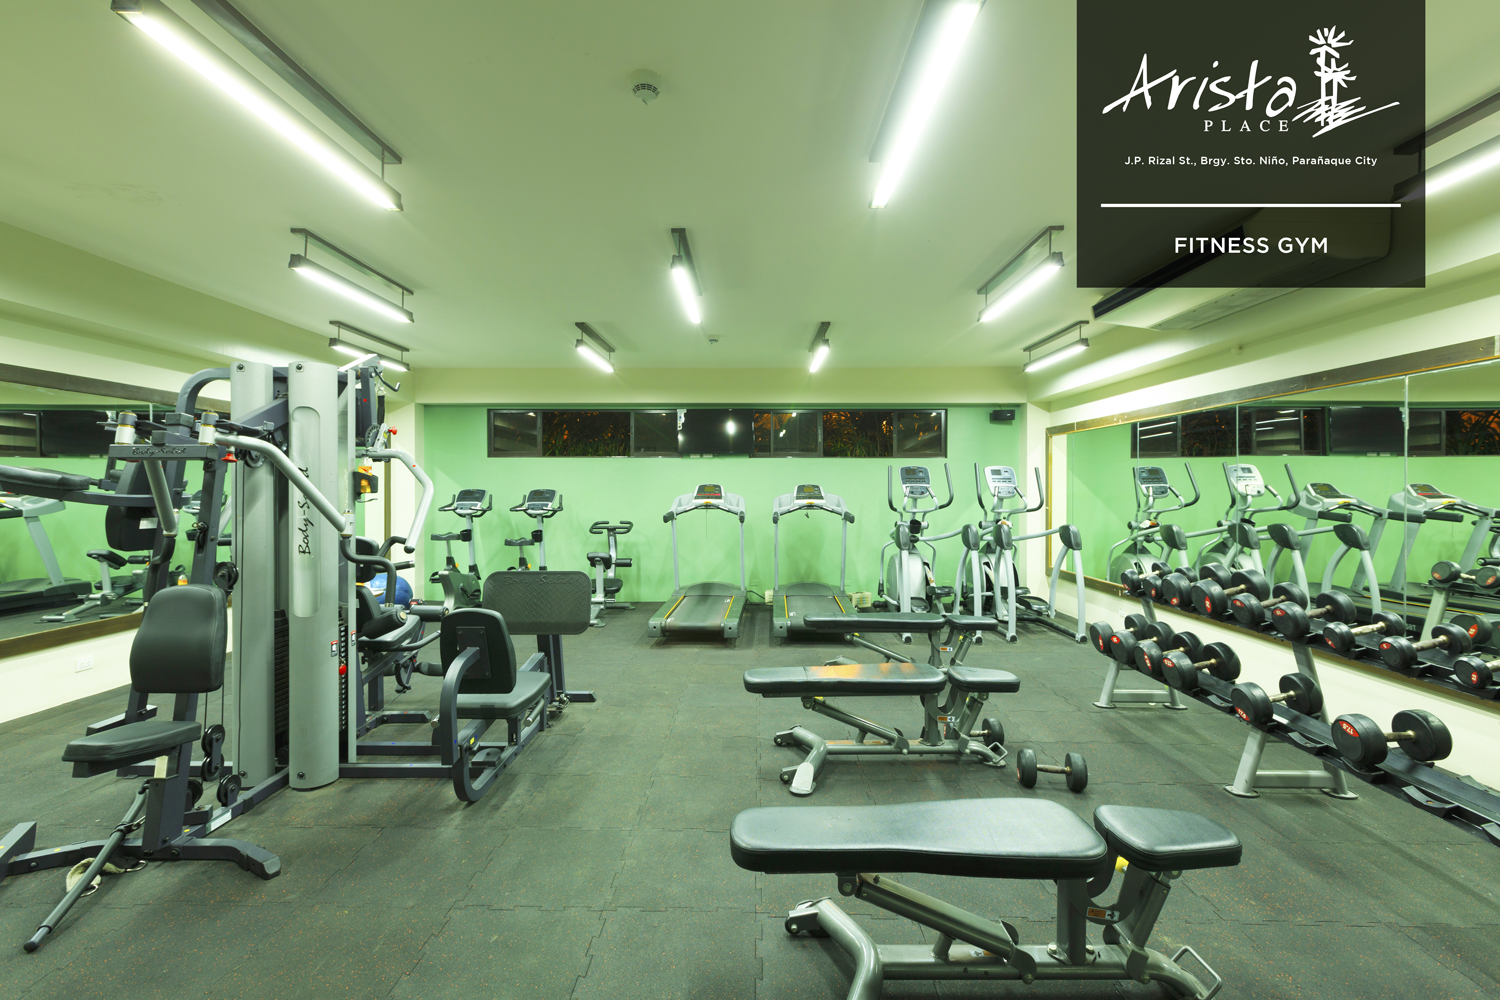 arista-place-fitness-gym